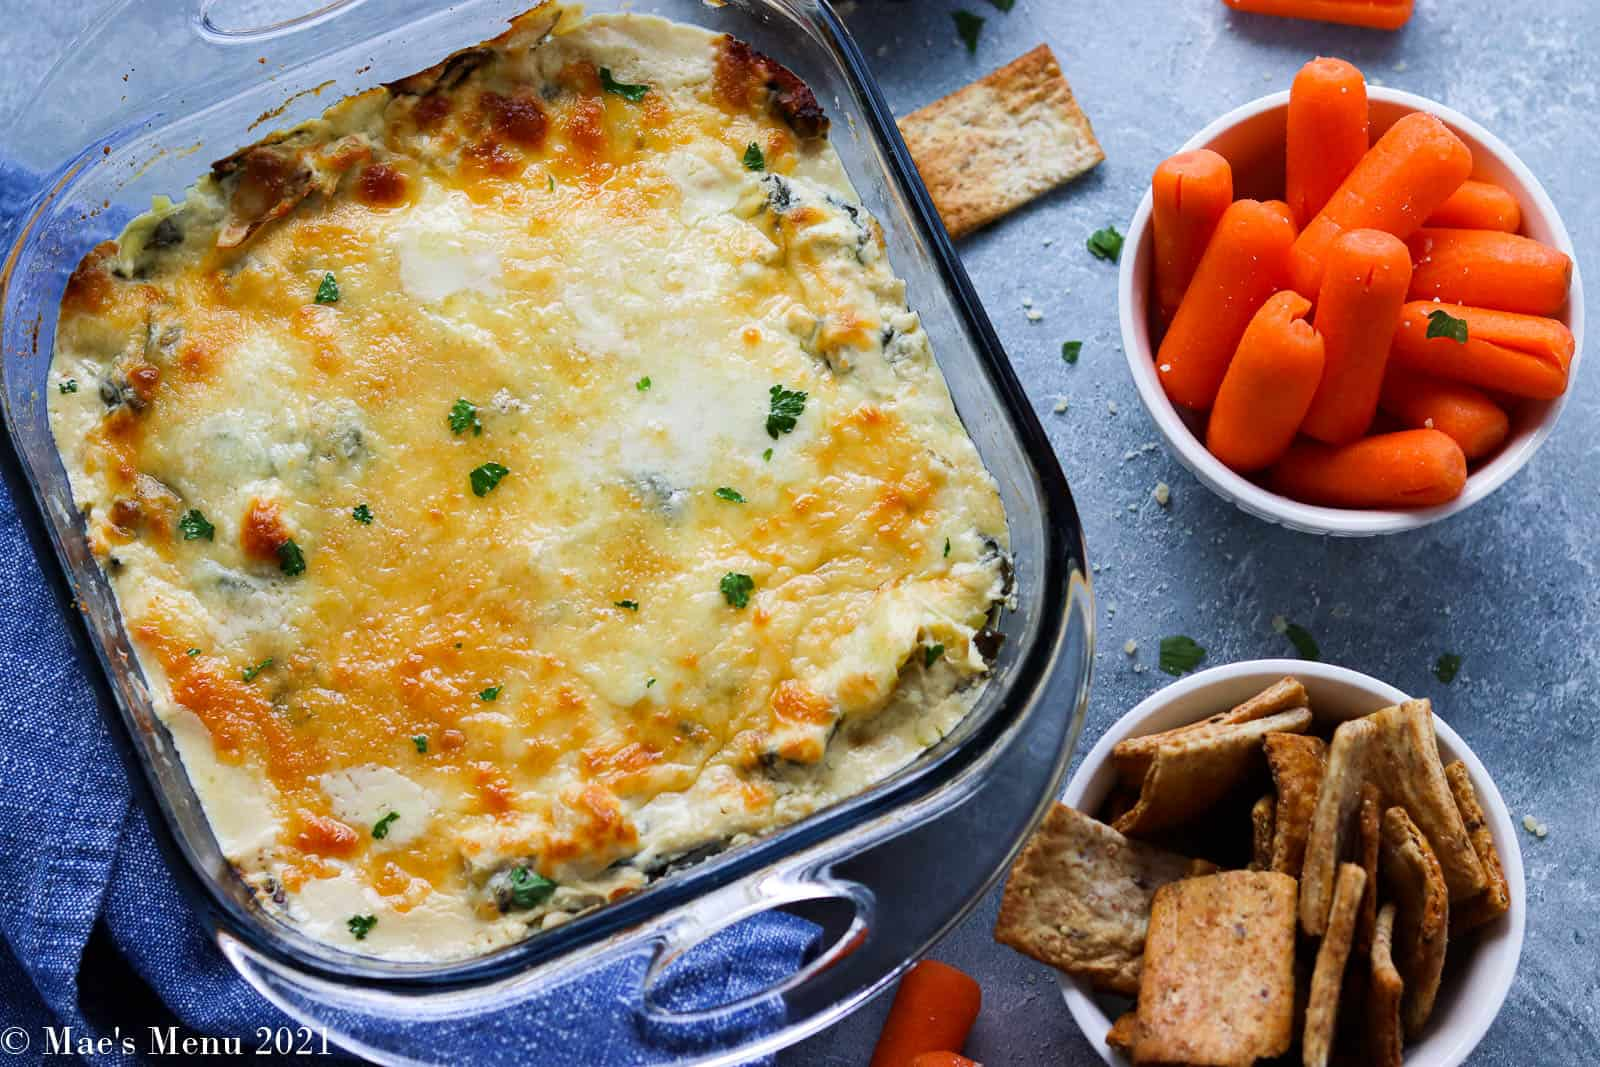 An overhead shot of a pan of spinach artichoke dip next to crackers and carrots